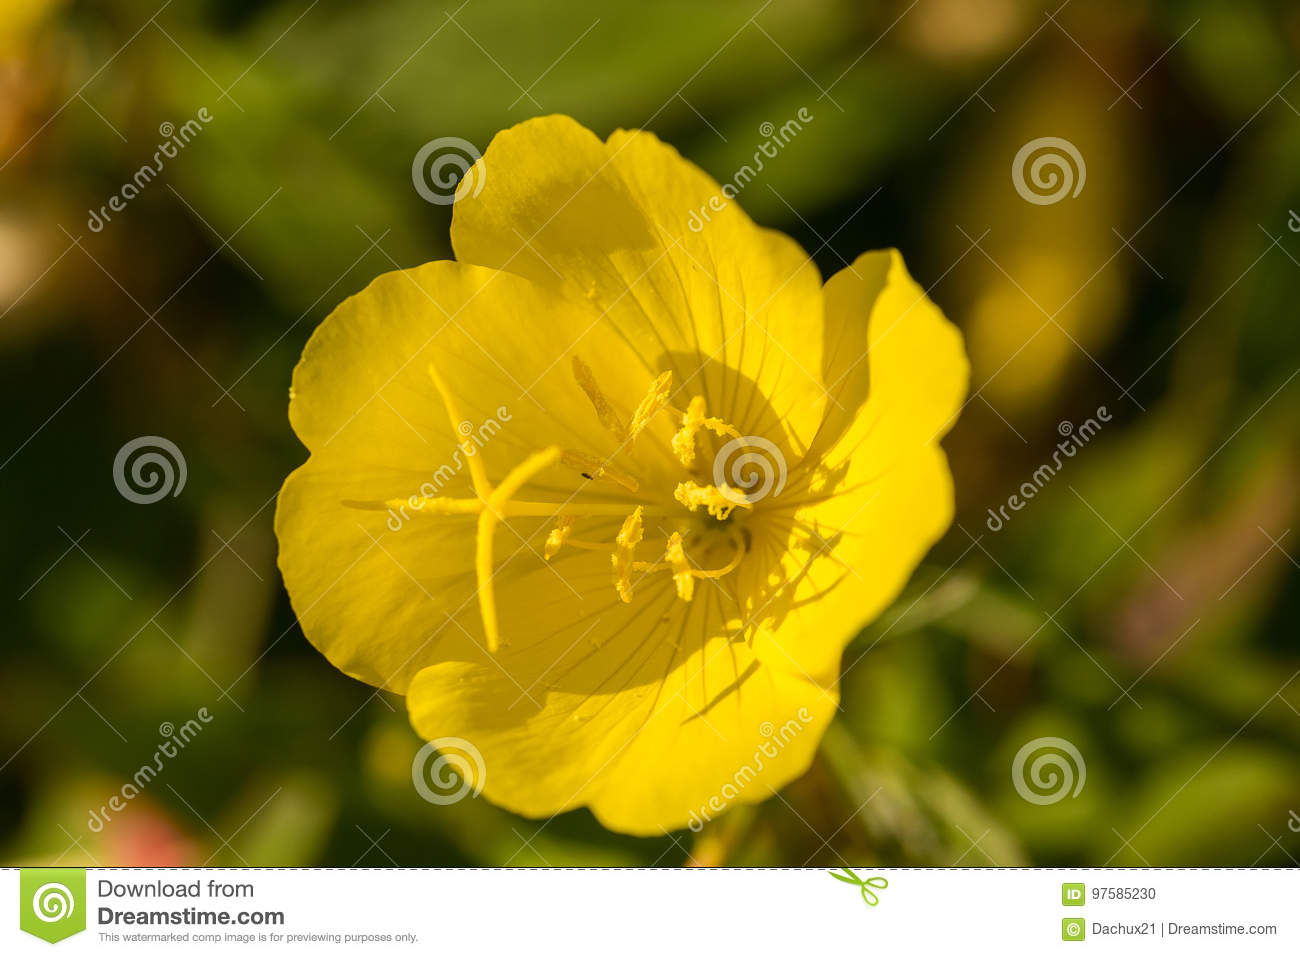 Bright yellow flowers growing in the summer garden beautiful flower download bright yellow flowers growing in the summer garden beautiful flower closeup stock photo mightylinksfo